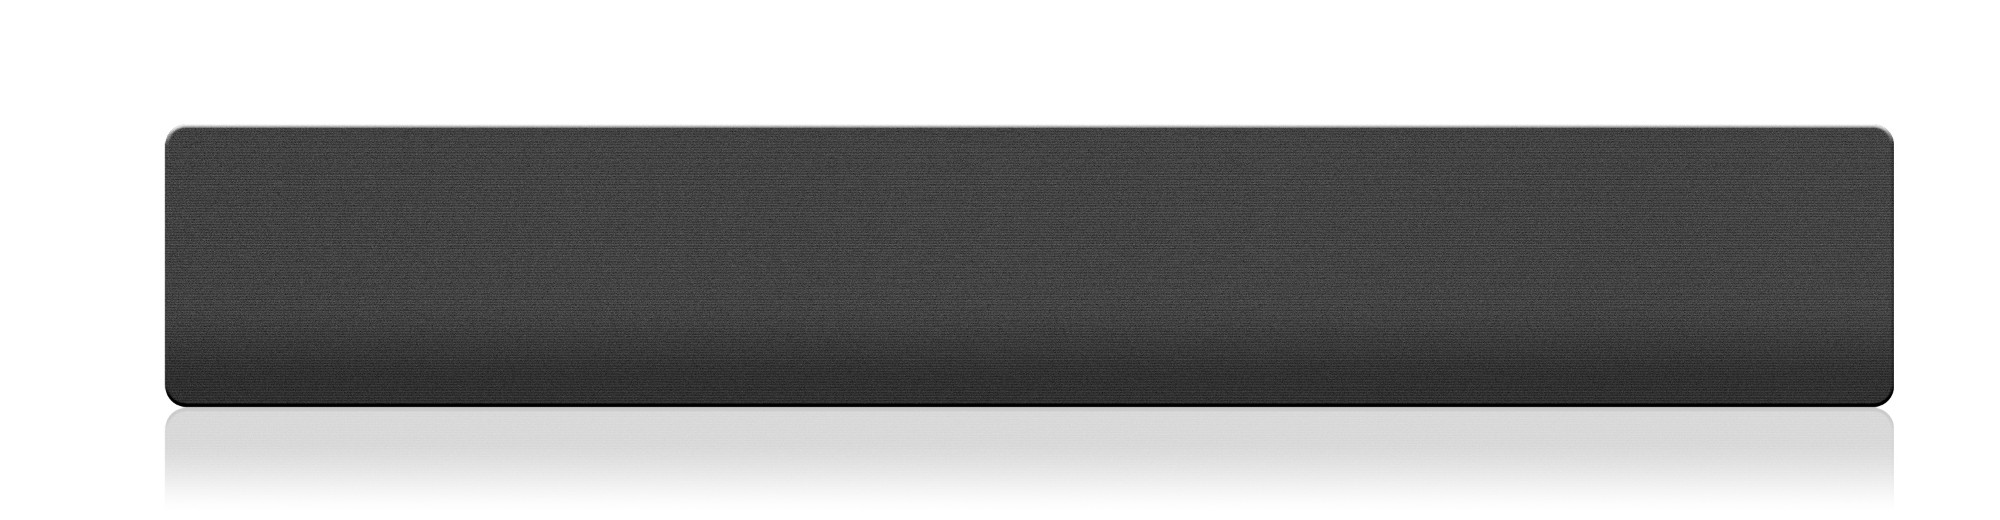 NEC SP-PS soundbar speaker 100 W Black